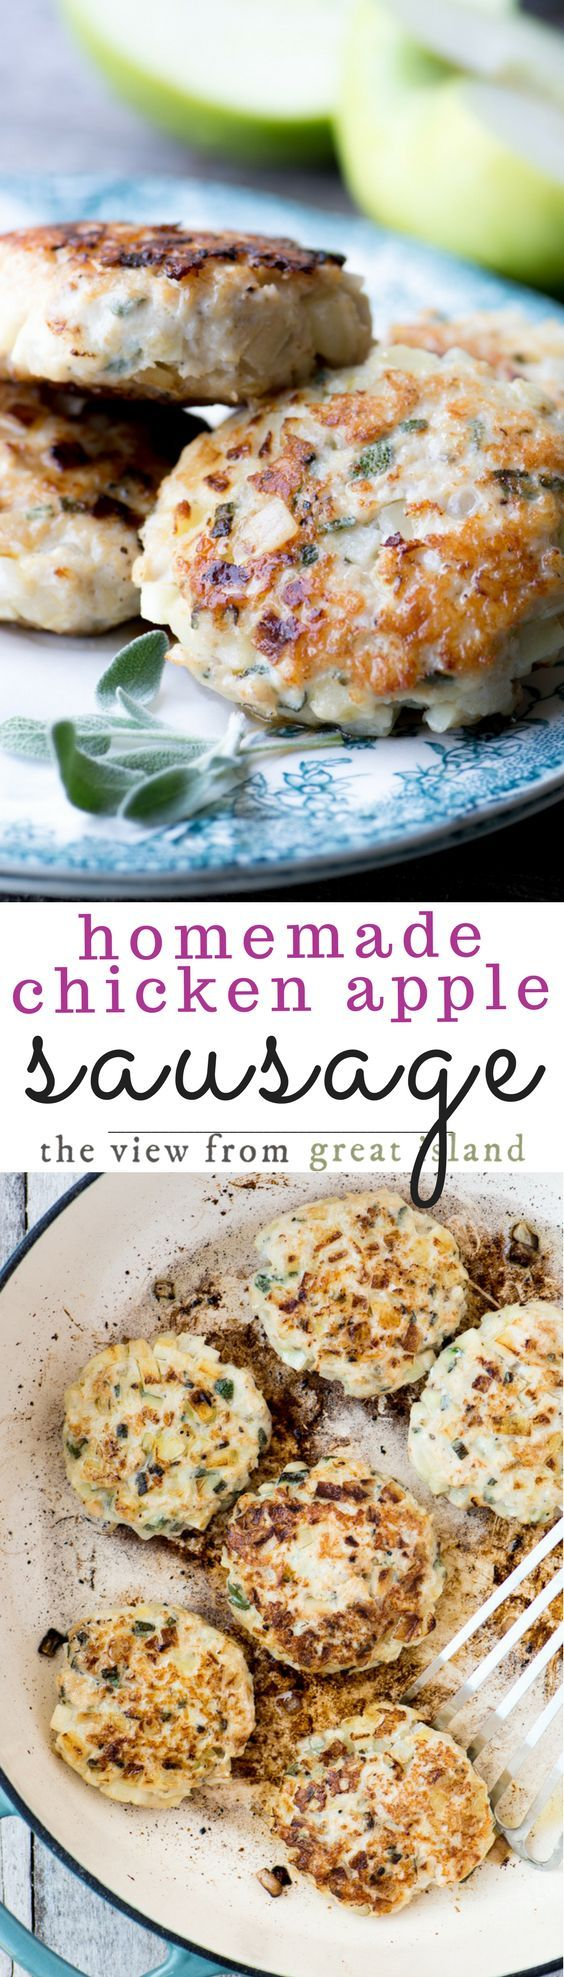 My Homemade Chicken Apple Sausage recipe is an easy way to make your own fabulously fresh sausage right at home ~ it freezes beautifully, too, so be sure to make extra so you can enjoy it anytime. #sausage #breakfast #meat #chickenapple #chickensausage #chicken #healthysausage #homemadesausage #countrysausage #sausagepatties